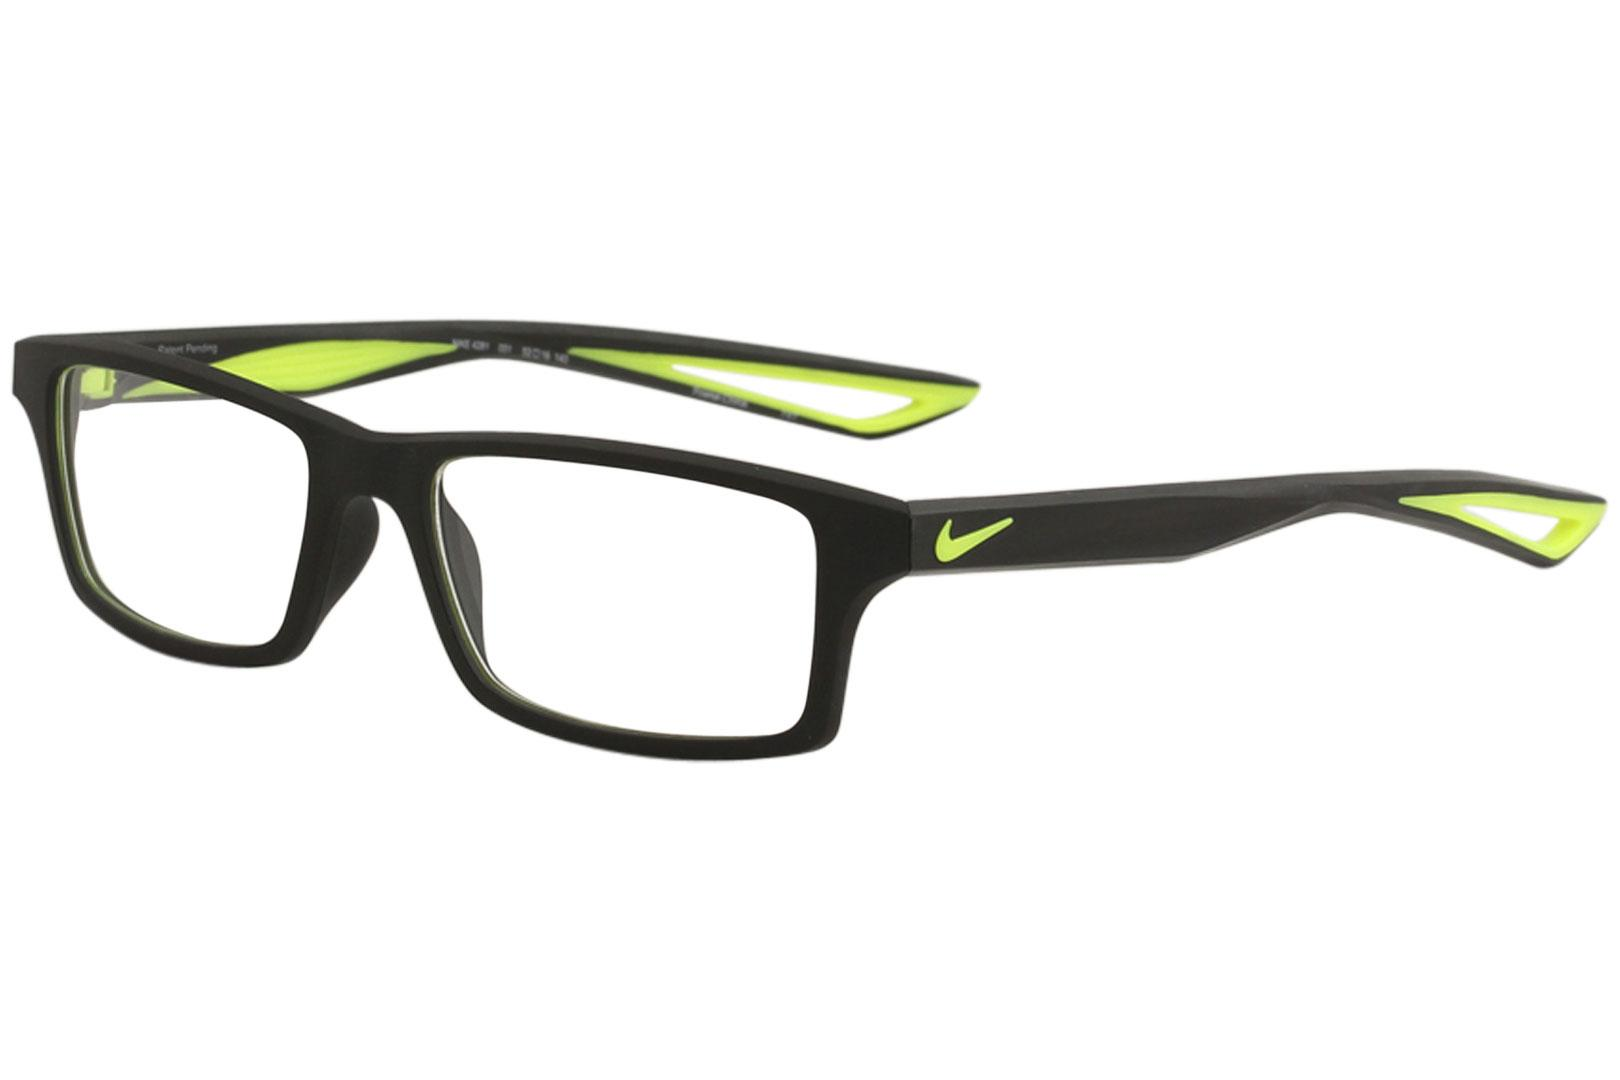 96f225358d Nike Men s Eyeglasses 4281 001 Black Volt Full Rim Flexon Optical ...